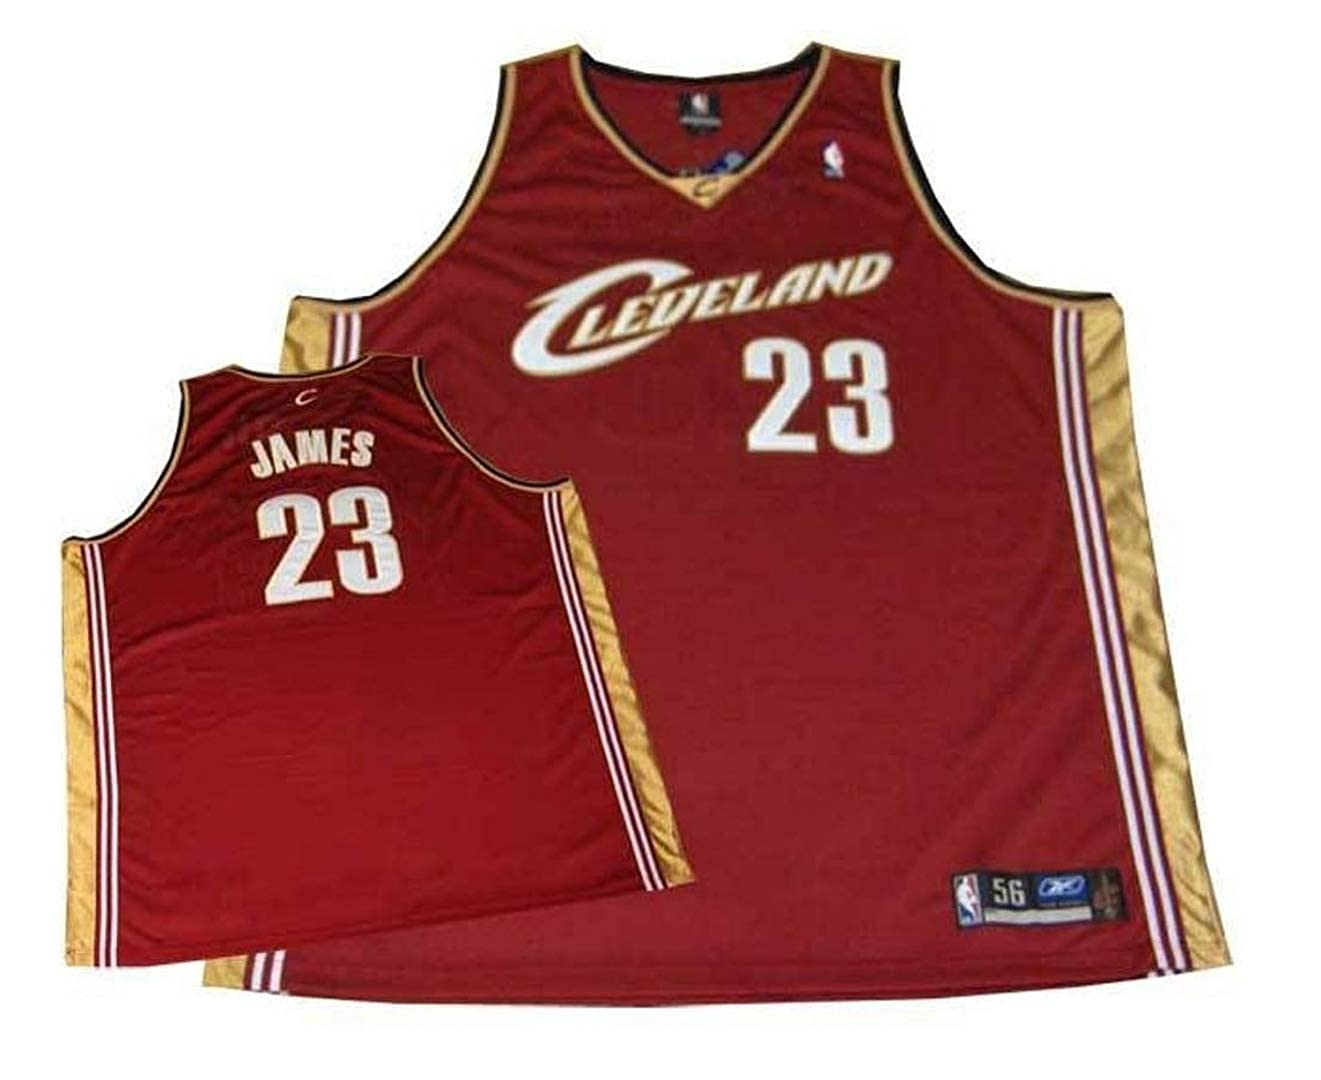 cheaper 53713 034b5 Lebron James Cleveland Cavaliers Authentic NBA Maroon Road Jersey